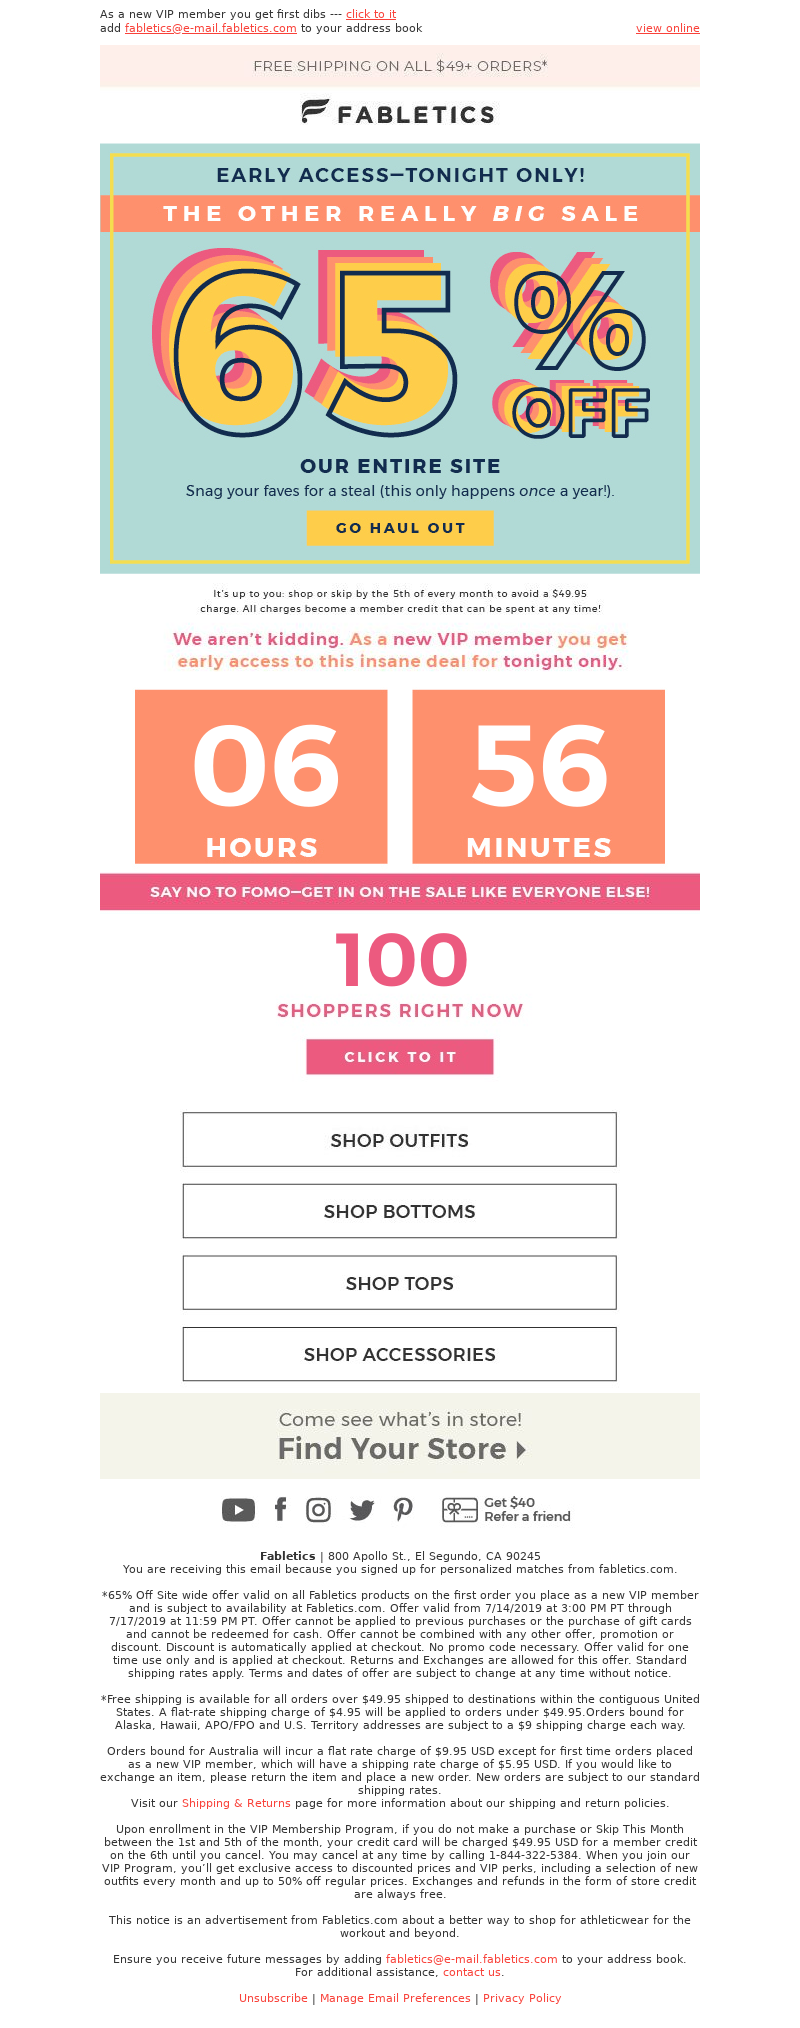 Fabletics - 48 HOURS: 65% off EVERYTHING ⚠️